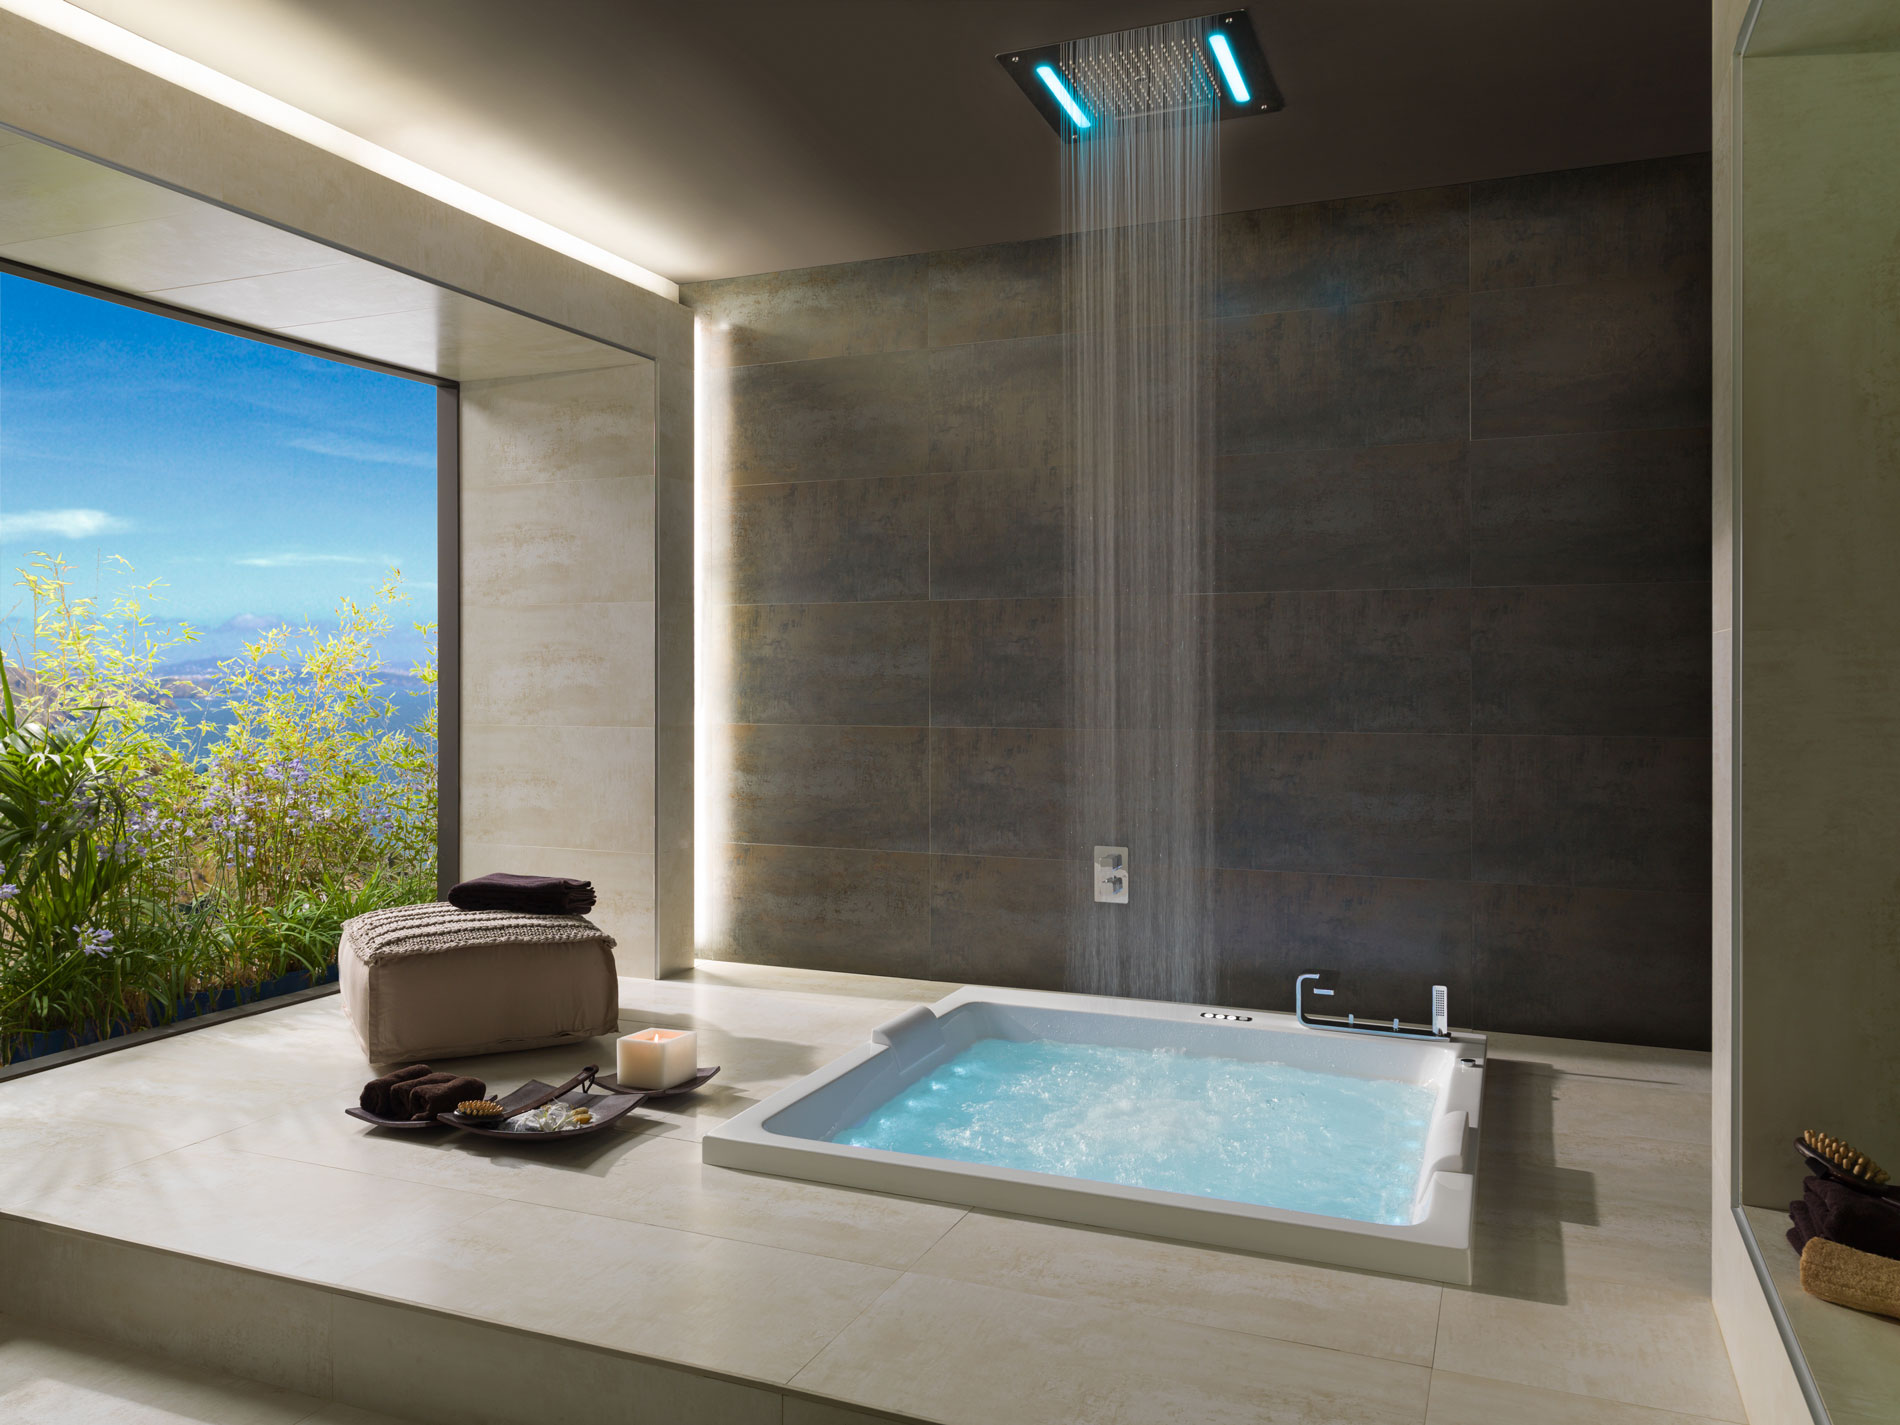 spa-at-home-bañera-soleil-noken-2